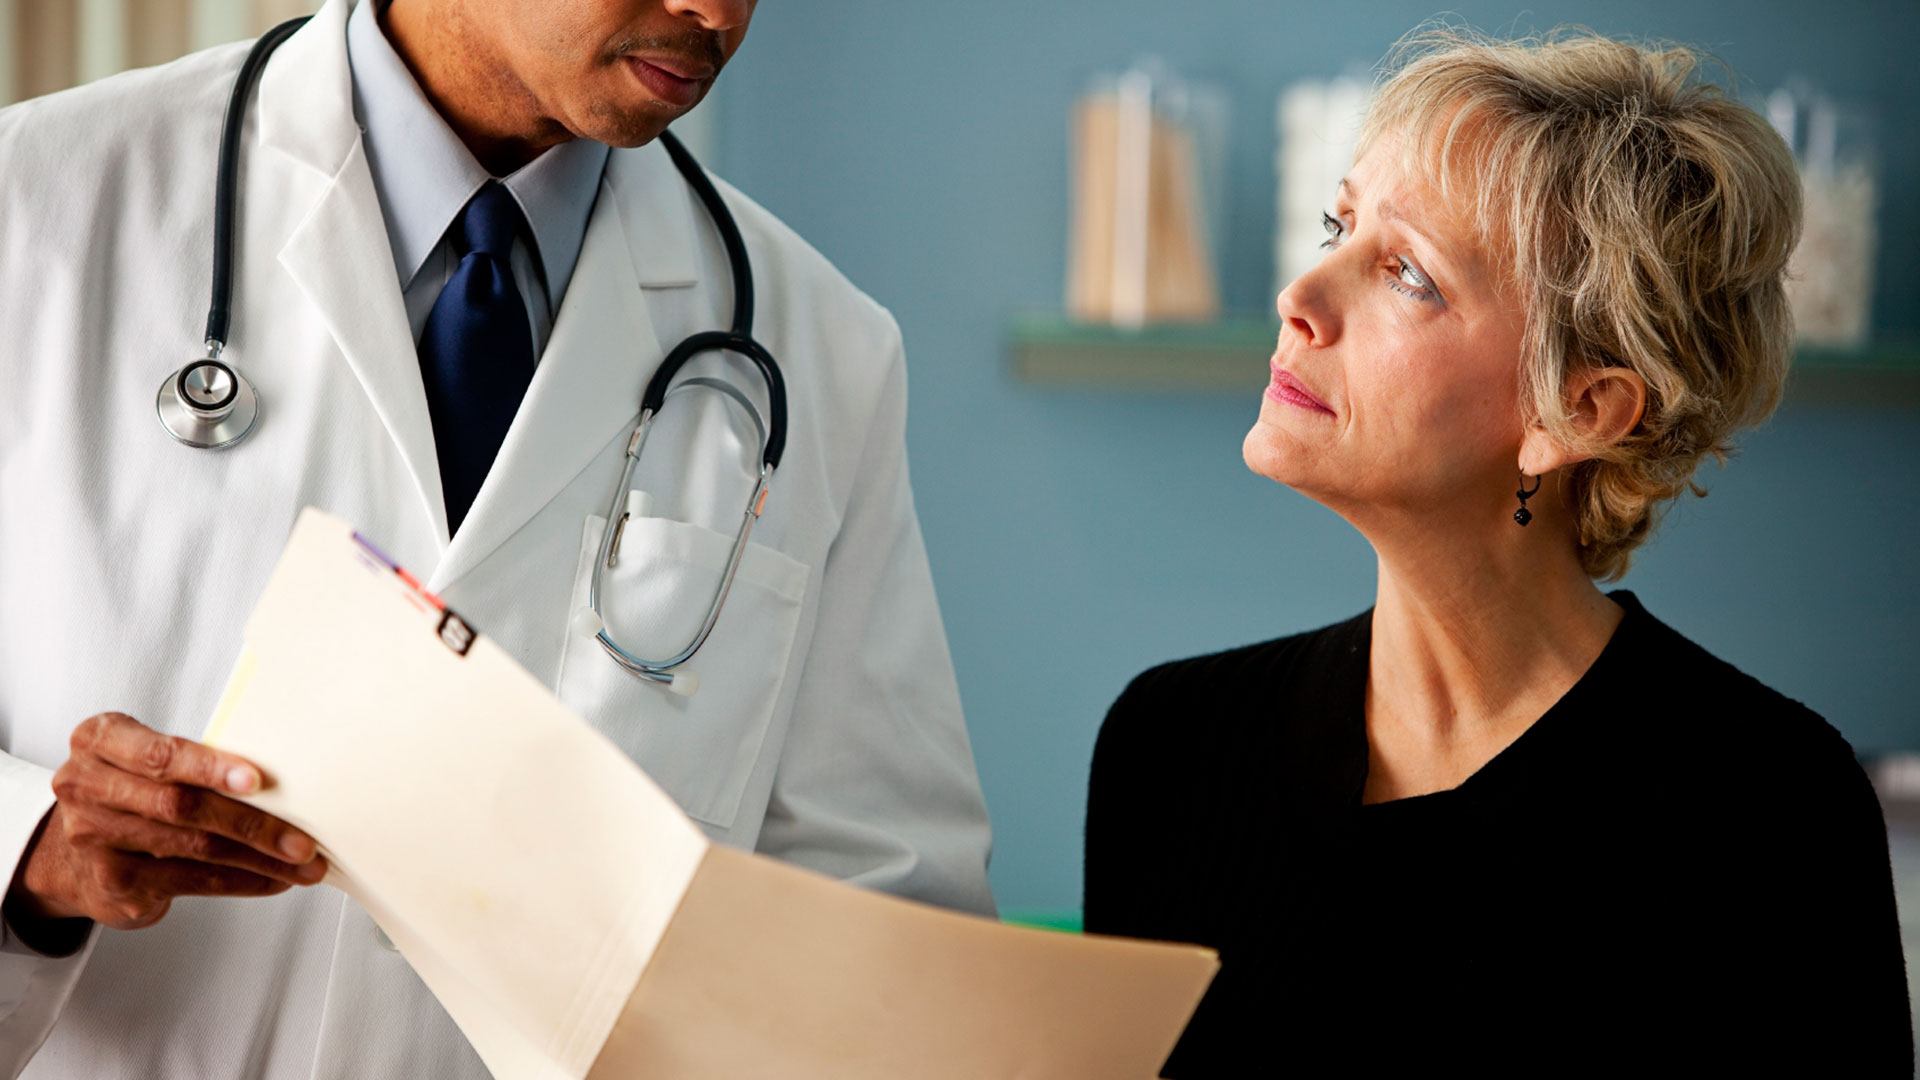 doctor patient communications Effective doctor-patient communication is a central clinical function in building a therapeutic doctor-patient relationship, which is the heart and art of medicine this is important in the.